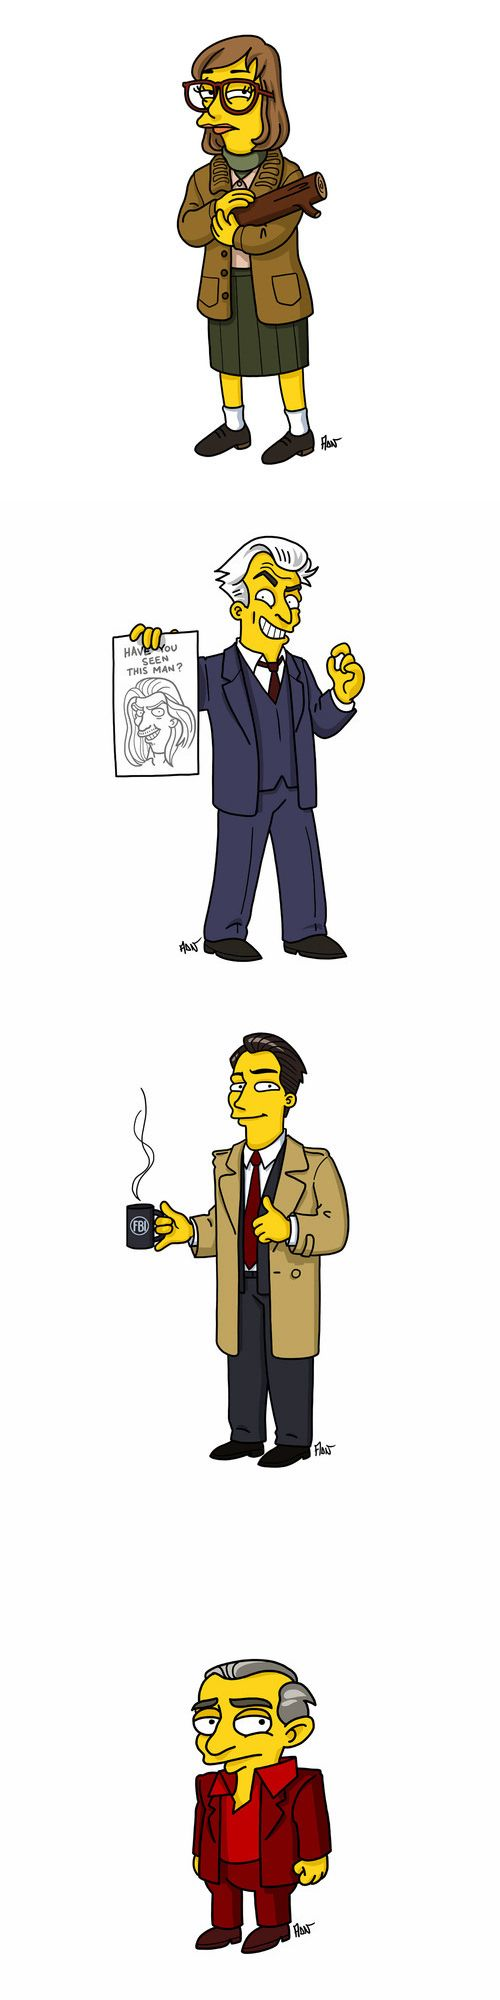 The 'Twin Peaks' cast gets a 'Simpsons' style makeover!